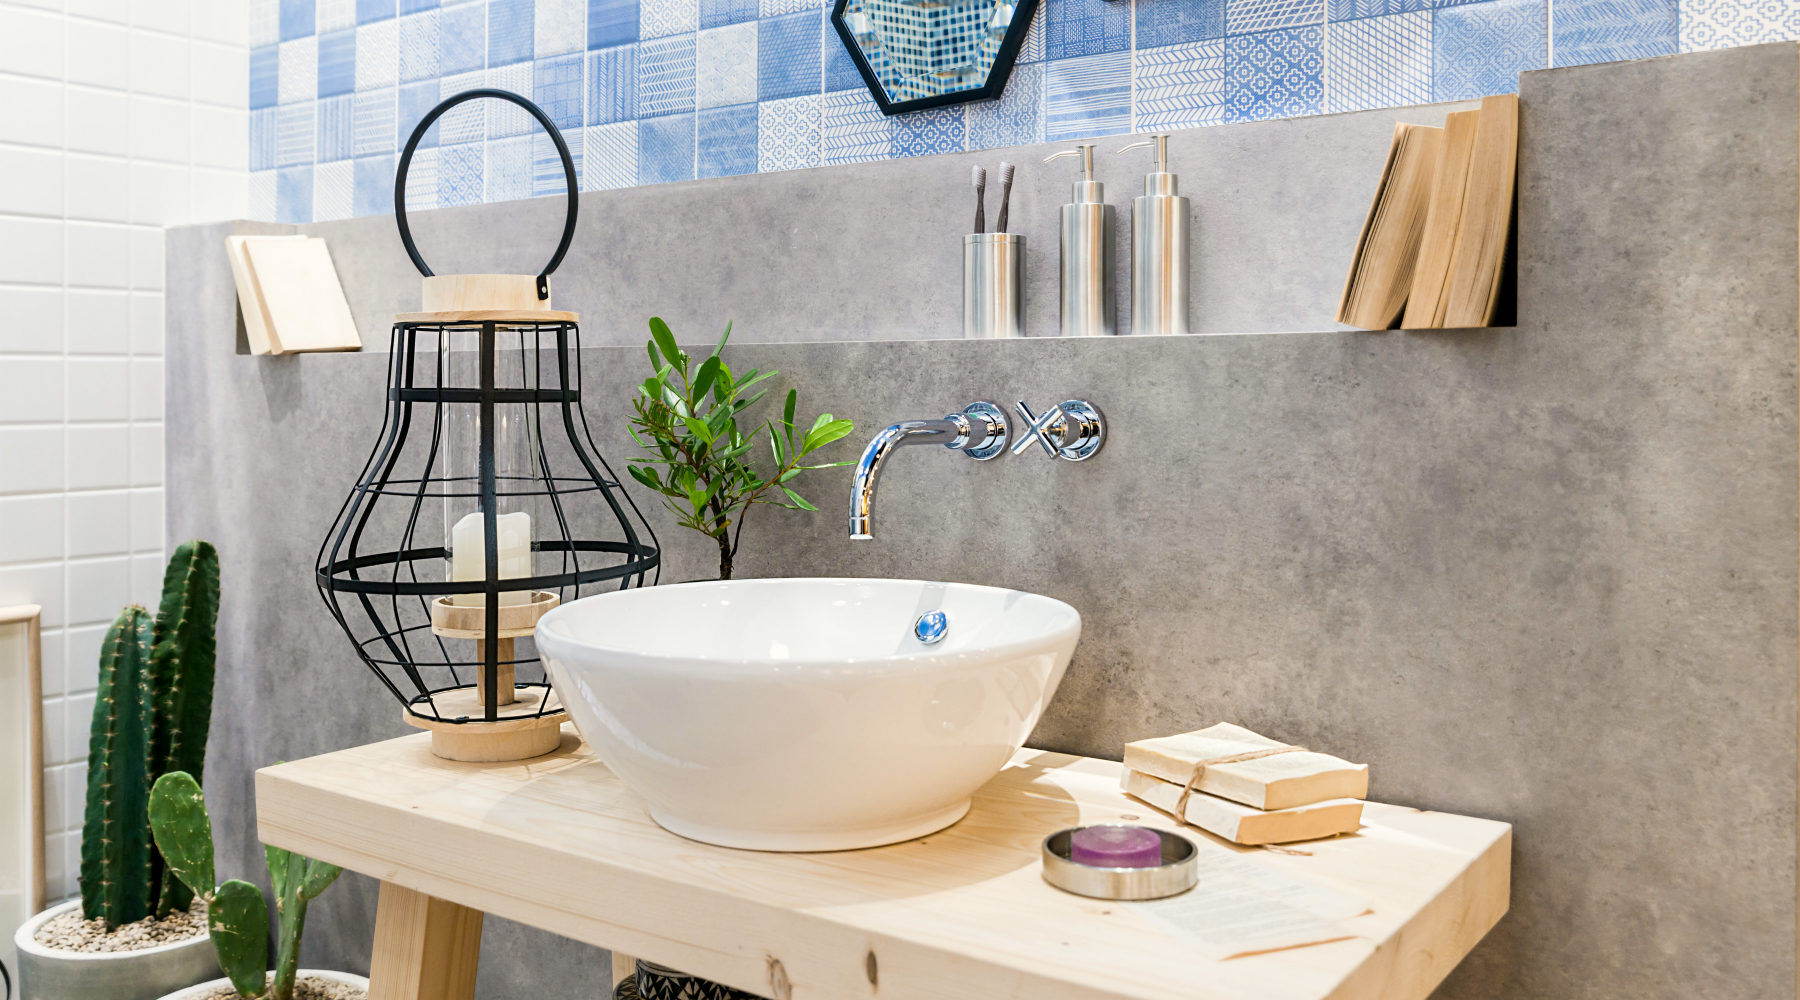 Bathroom with blue tile and white vessel sink